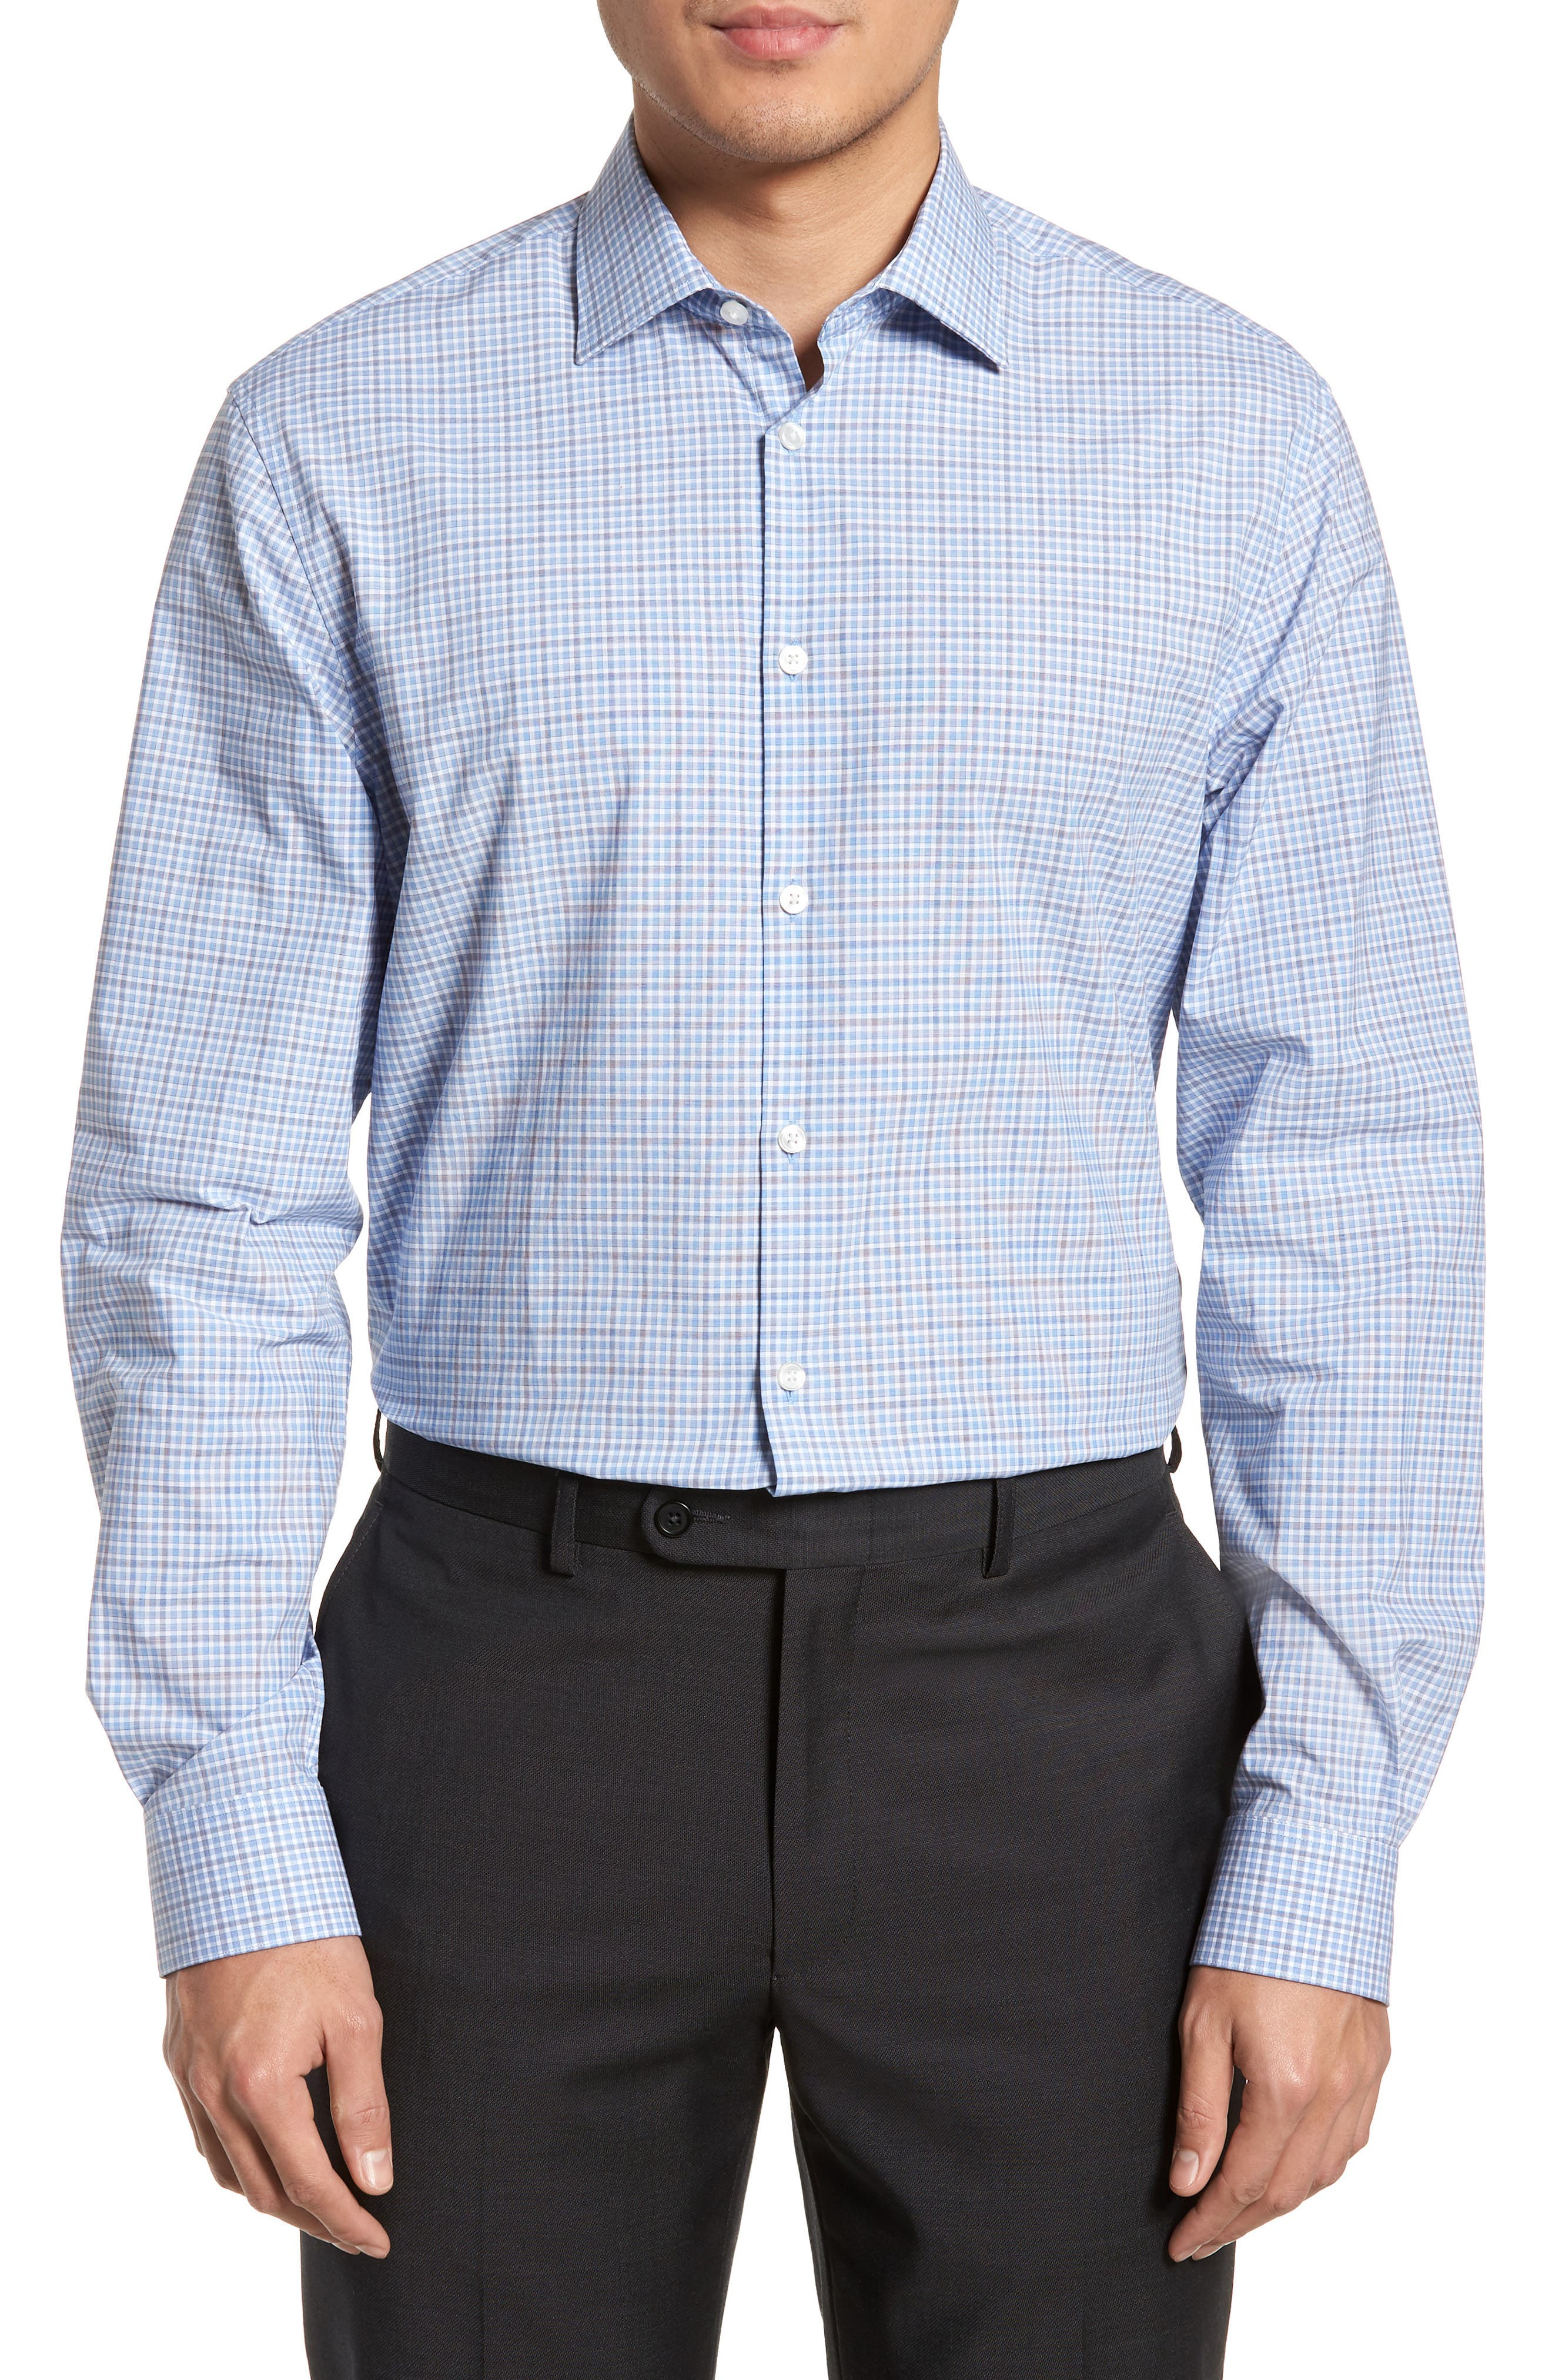 Regular Fit Stretch Check Dress Shirt,                         Main,                         color, Sky